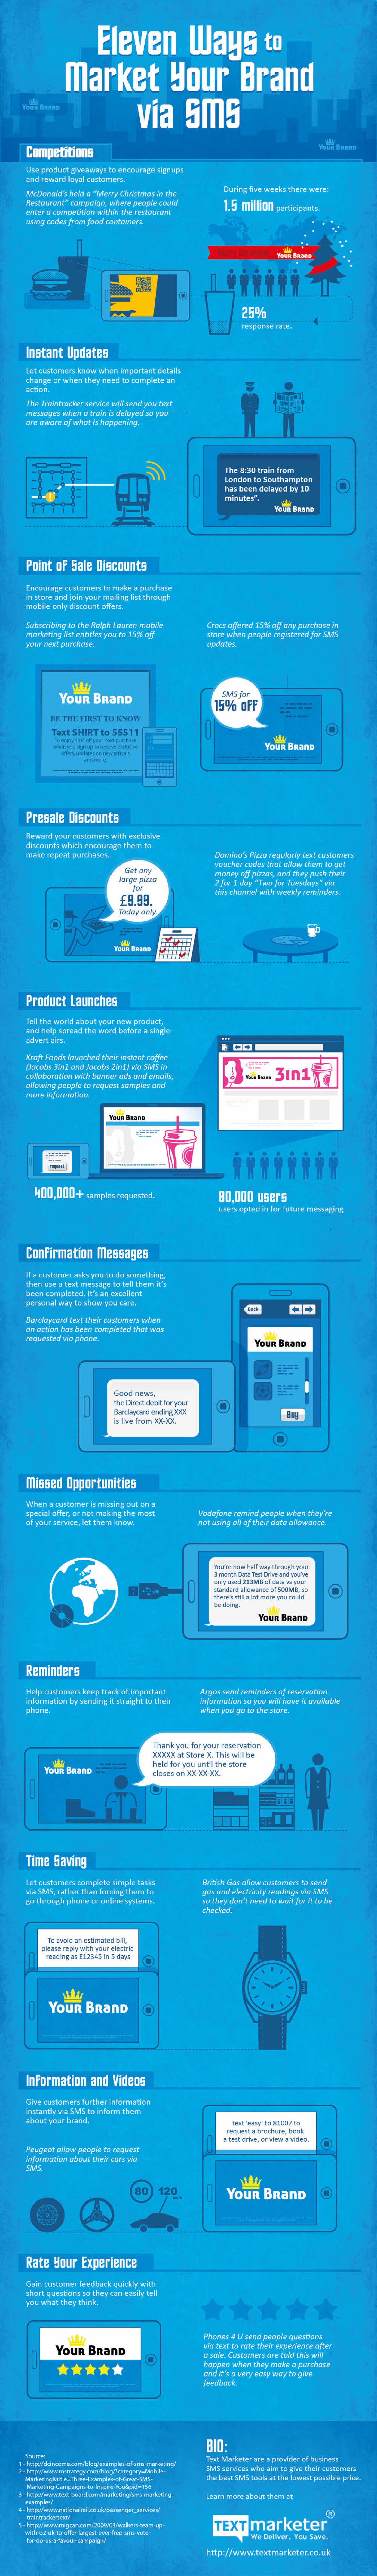 The 11 Ways To Market Your Brand Via SMS Infographic